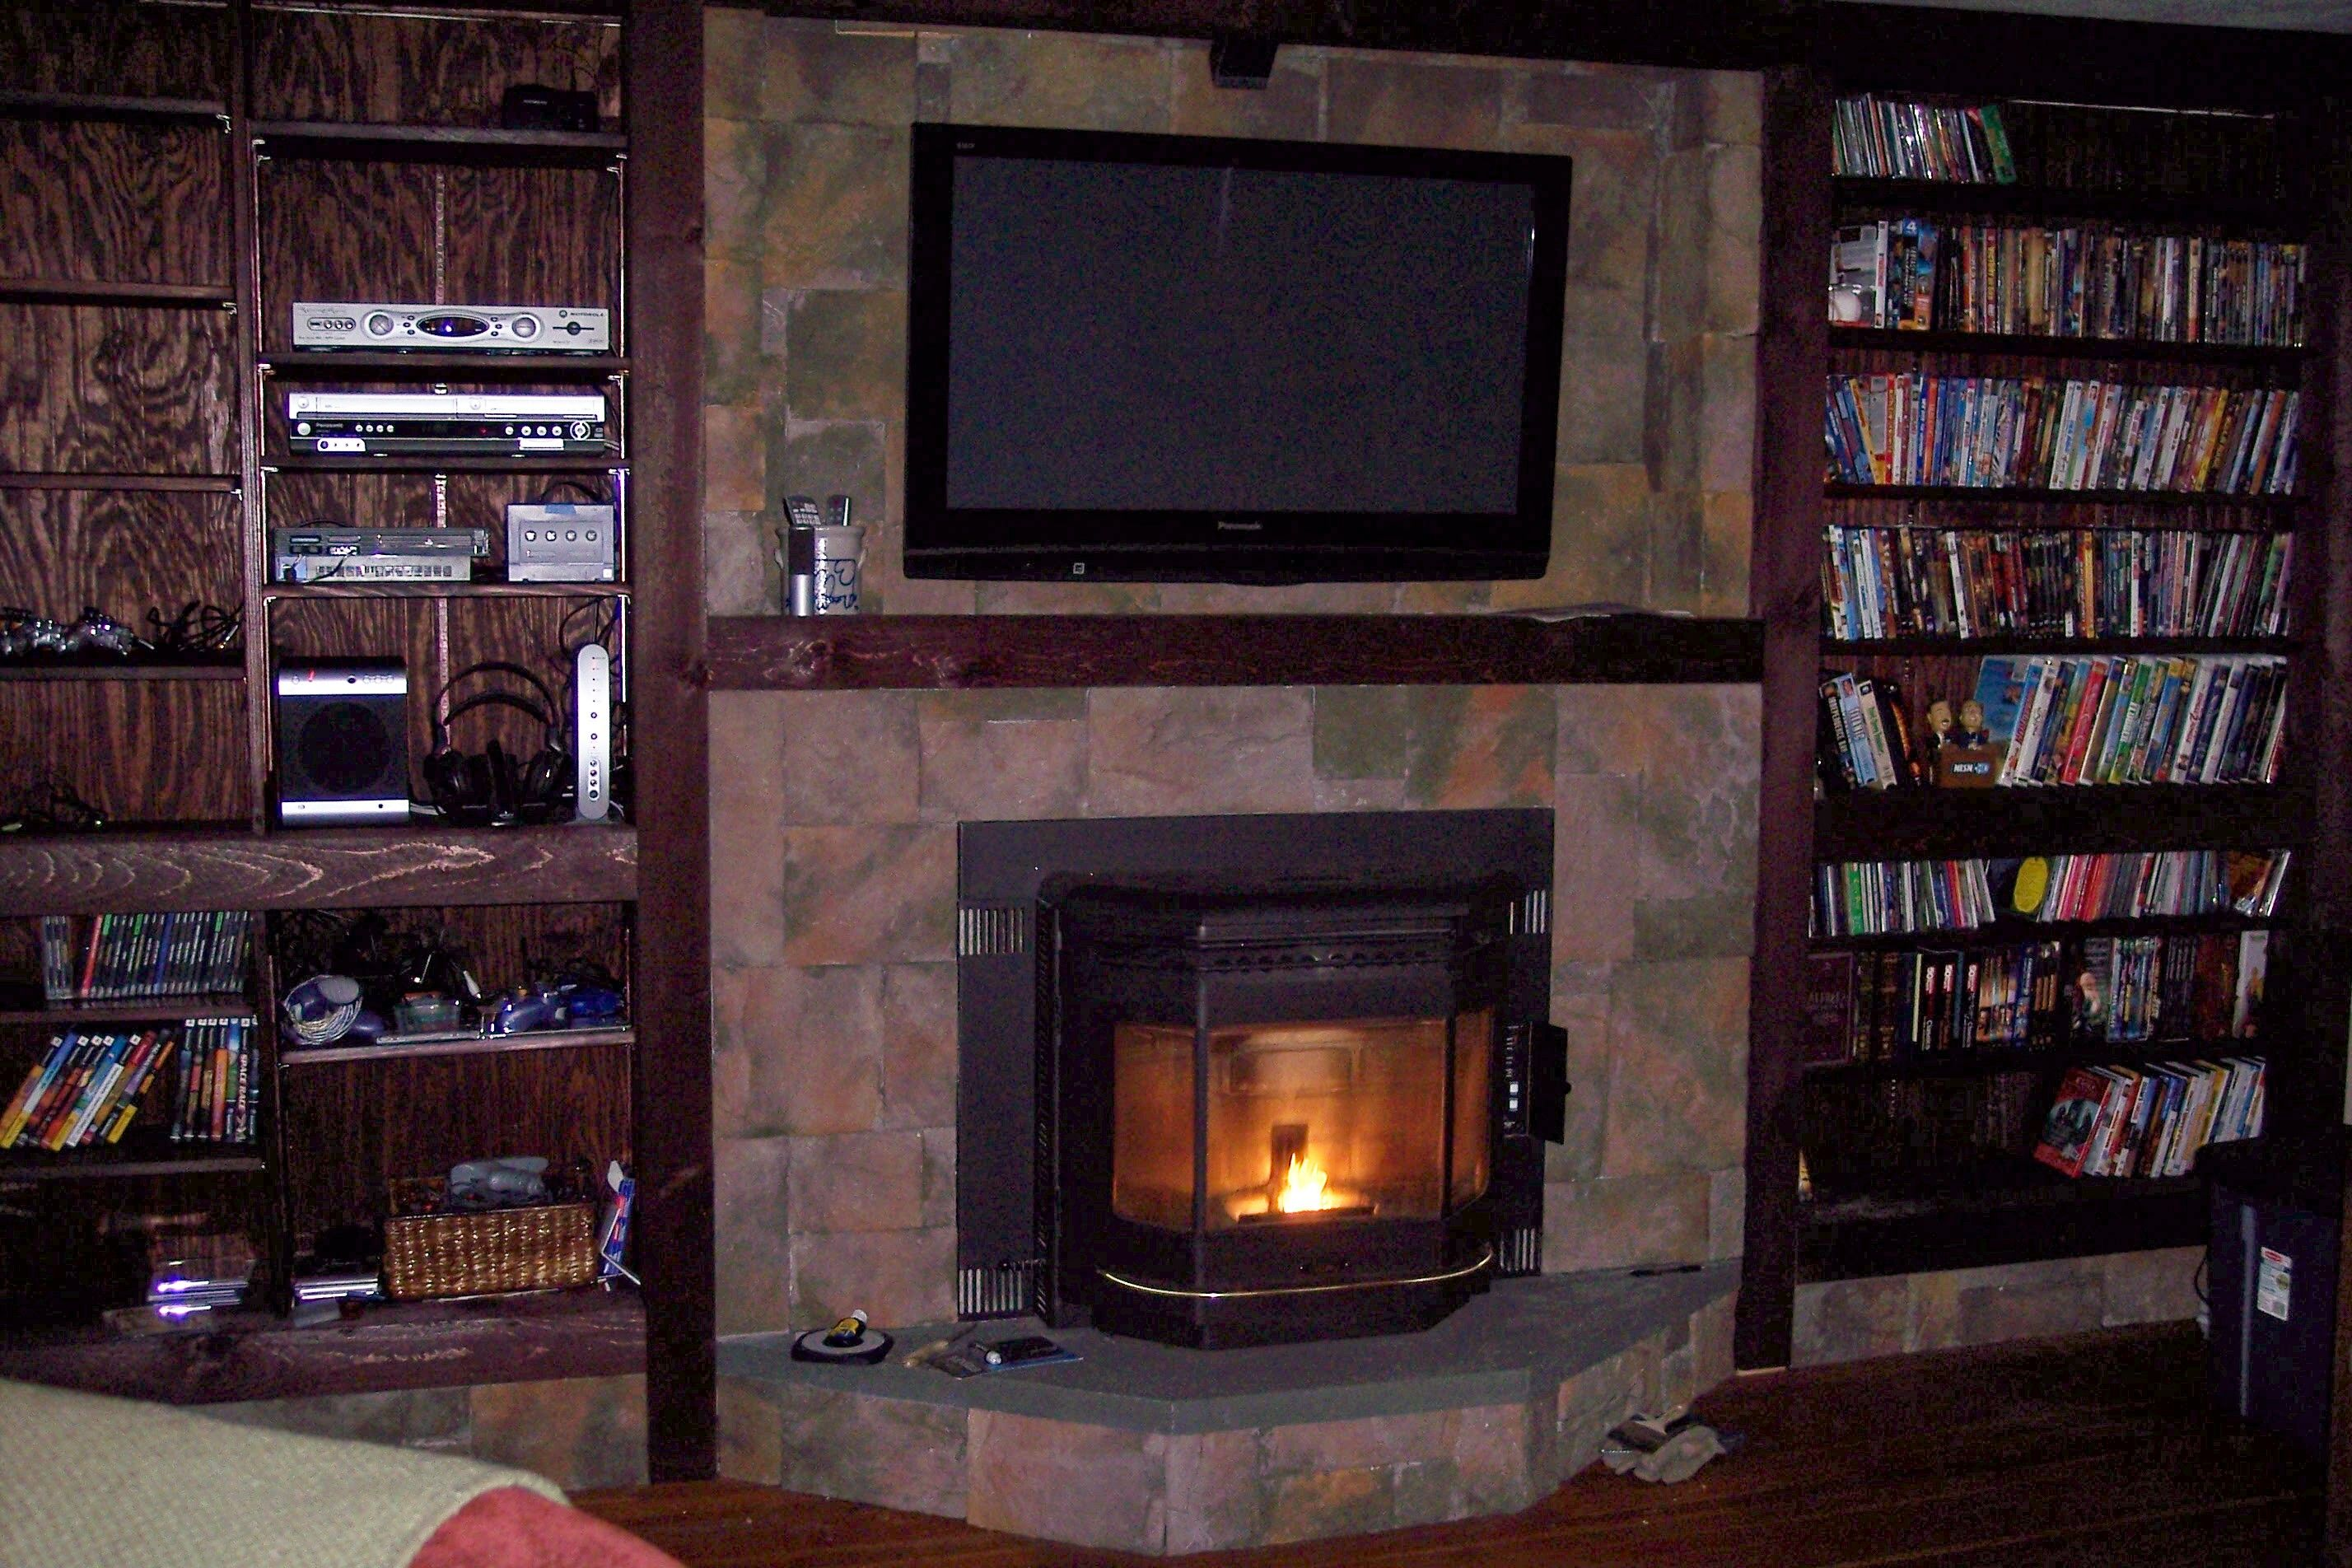 Pellet Stoves Insert In And Burning Castle Stone Surround Shelves On Either Side Pellet Stove Wood Burning Fireplace Inserts Build A Fireplace